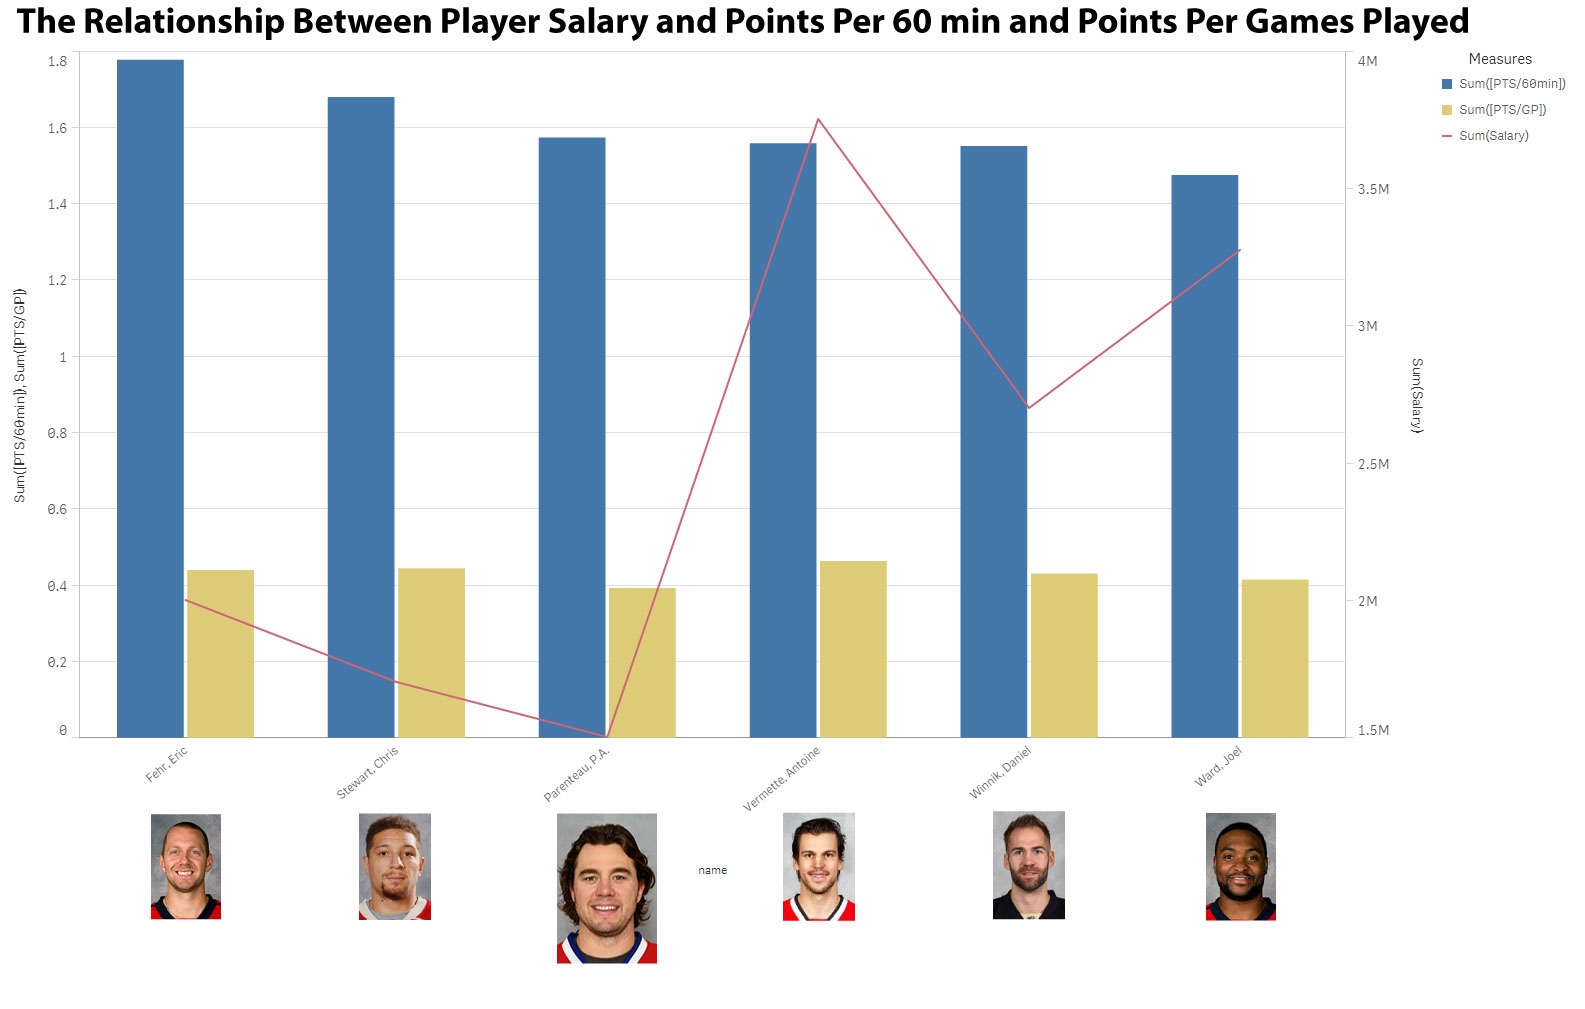 Figure 1 The Relationship Between Player Salary and Points Per 60 min and Points Per Games Played